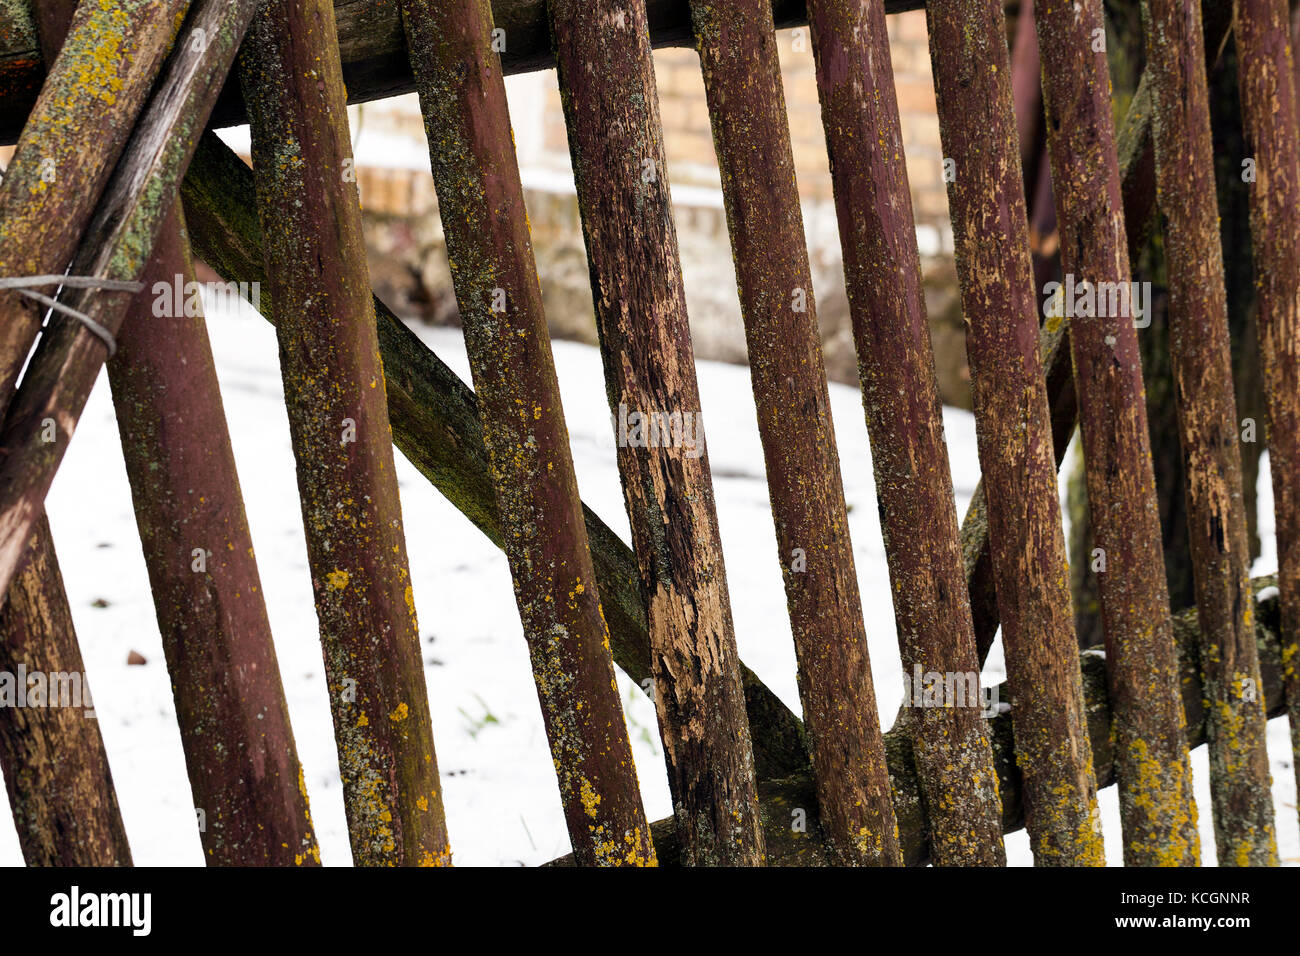 an old destroyed wooden fence in the countryside. Part of the fence is broken. Photo taken close up - Stock Image